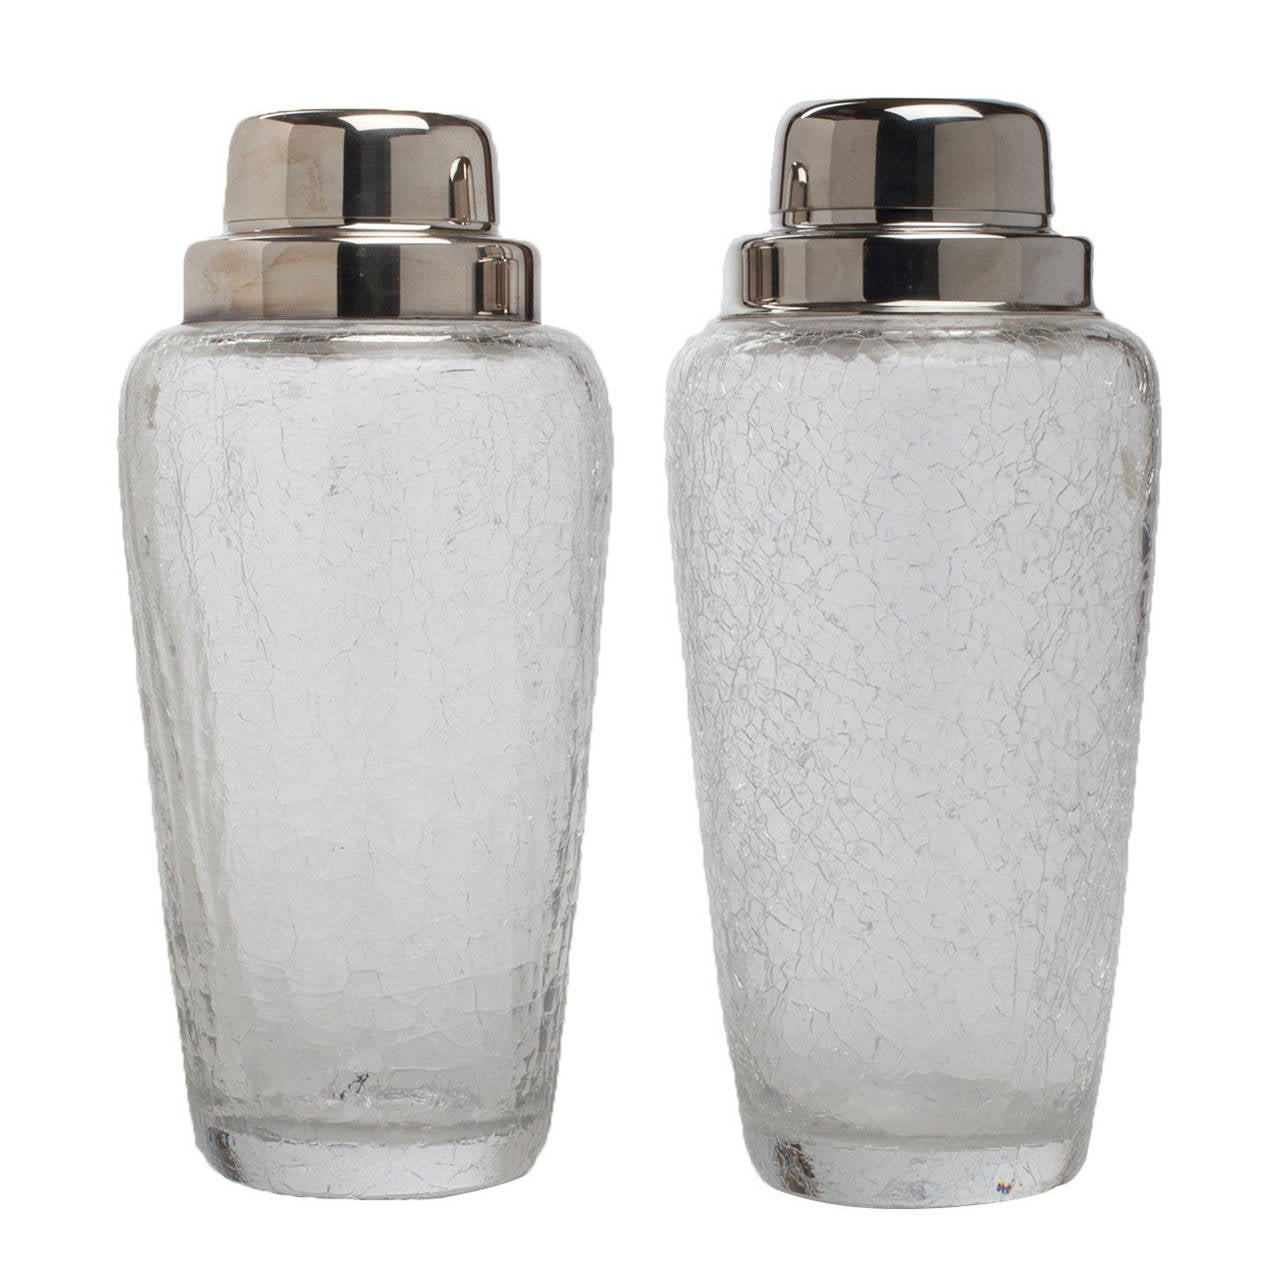 Pair of silver-plated crackle glasscocktail shakers, 1950